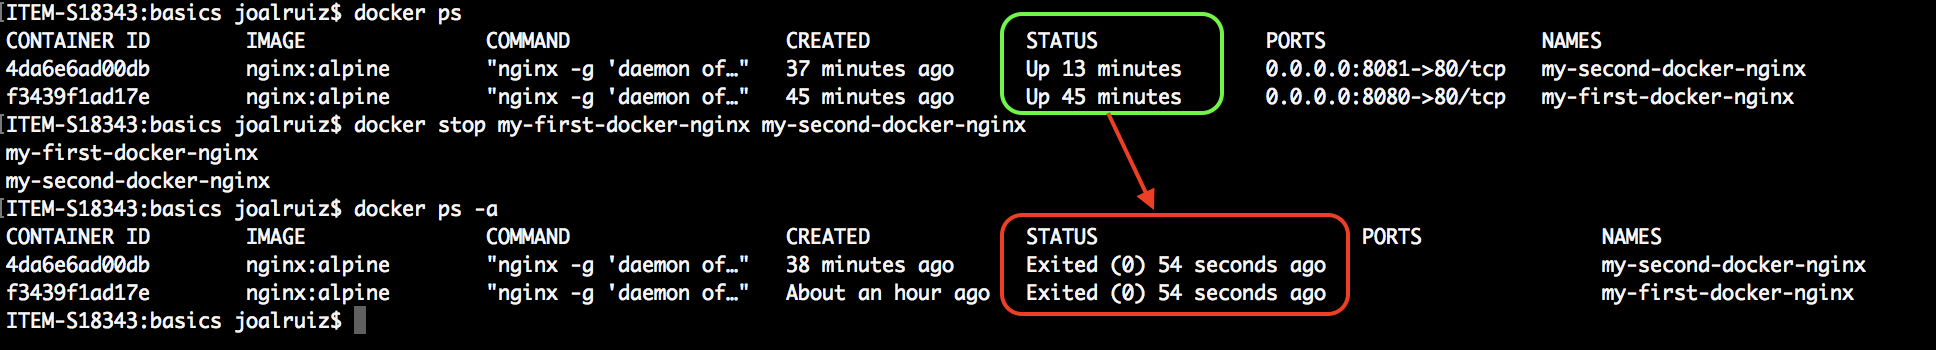 Docker stop containers